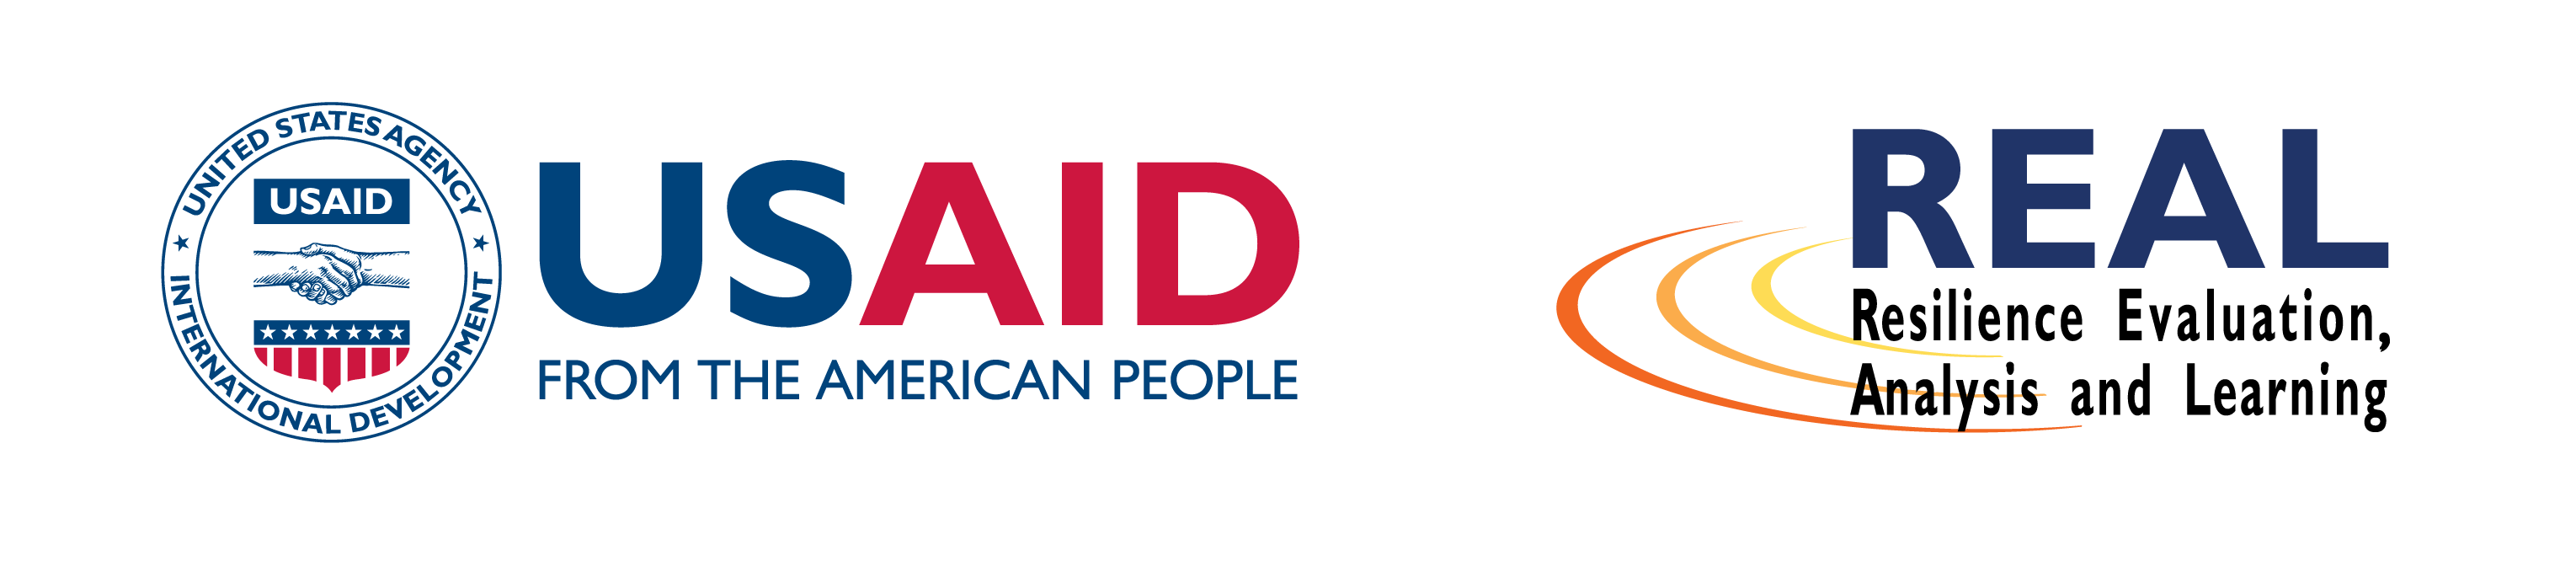 Logos for USAID and the REAL Award